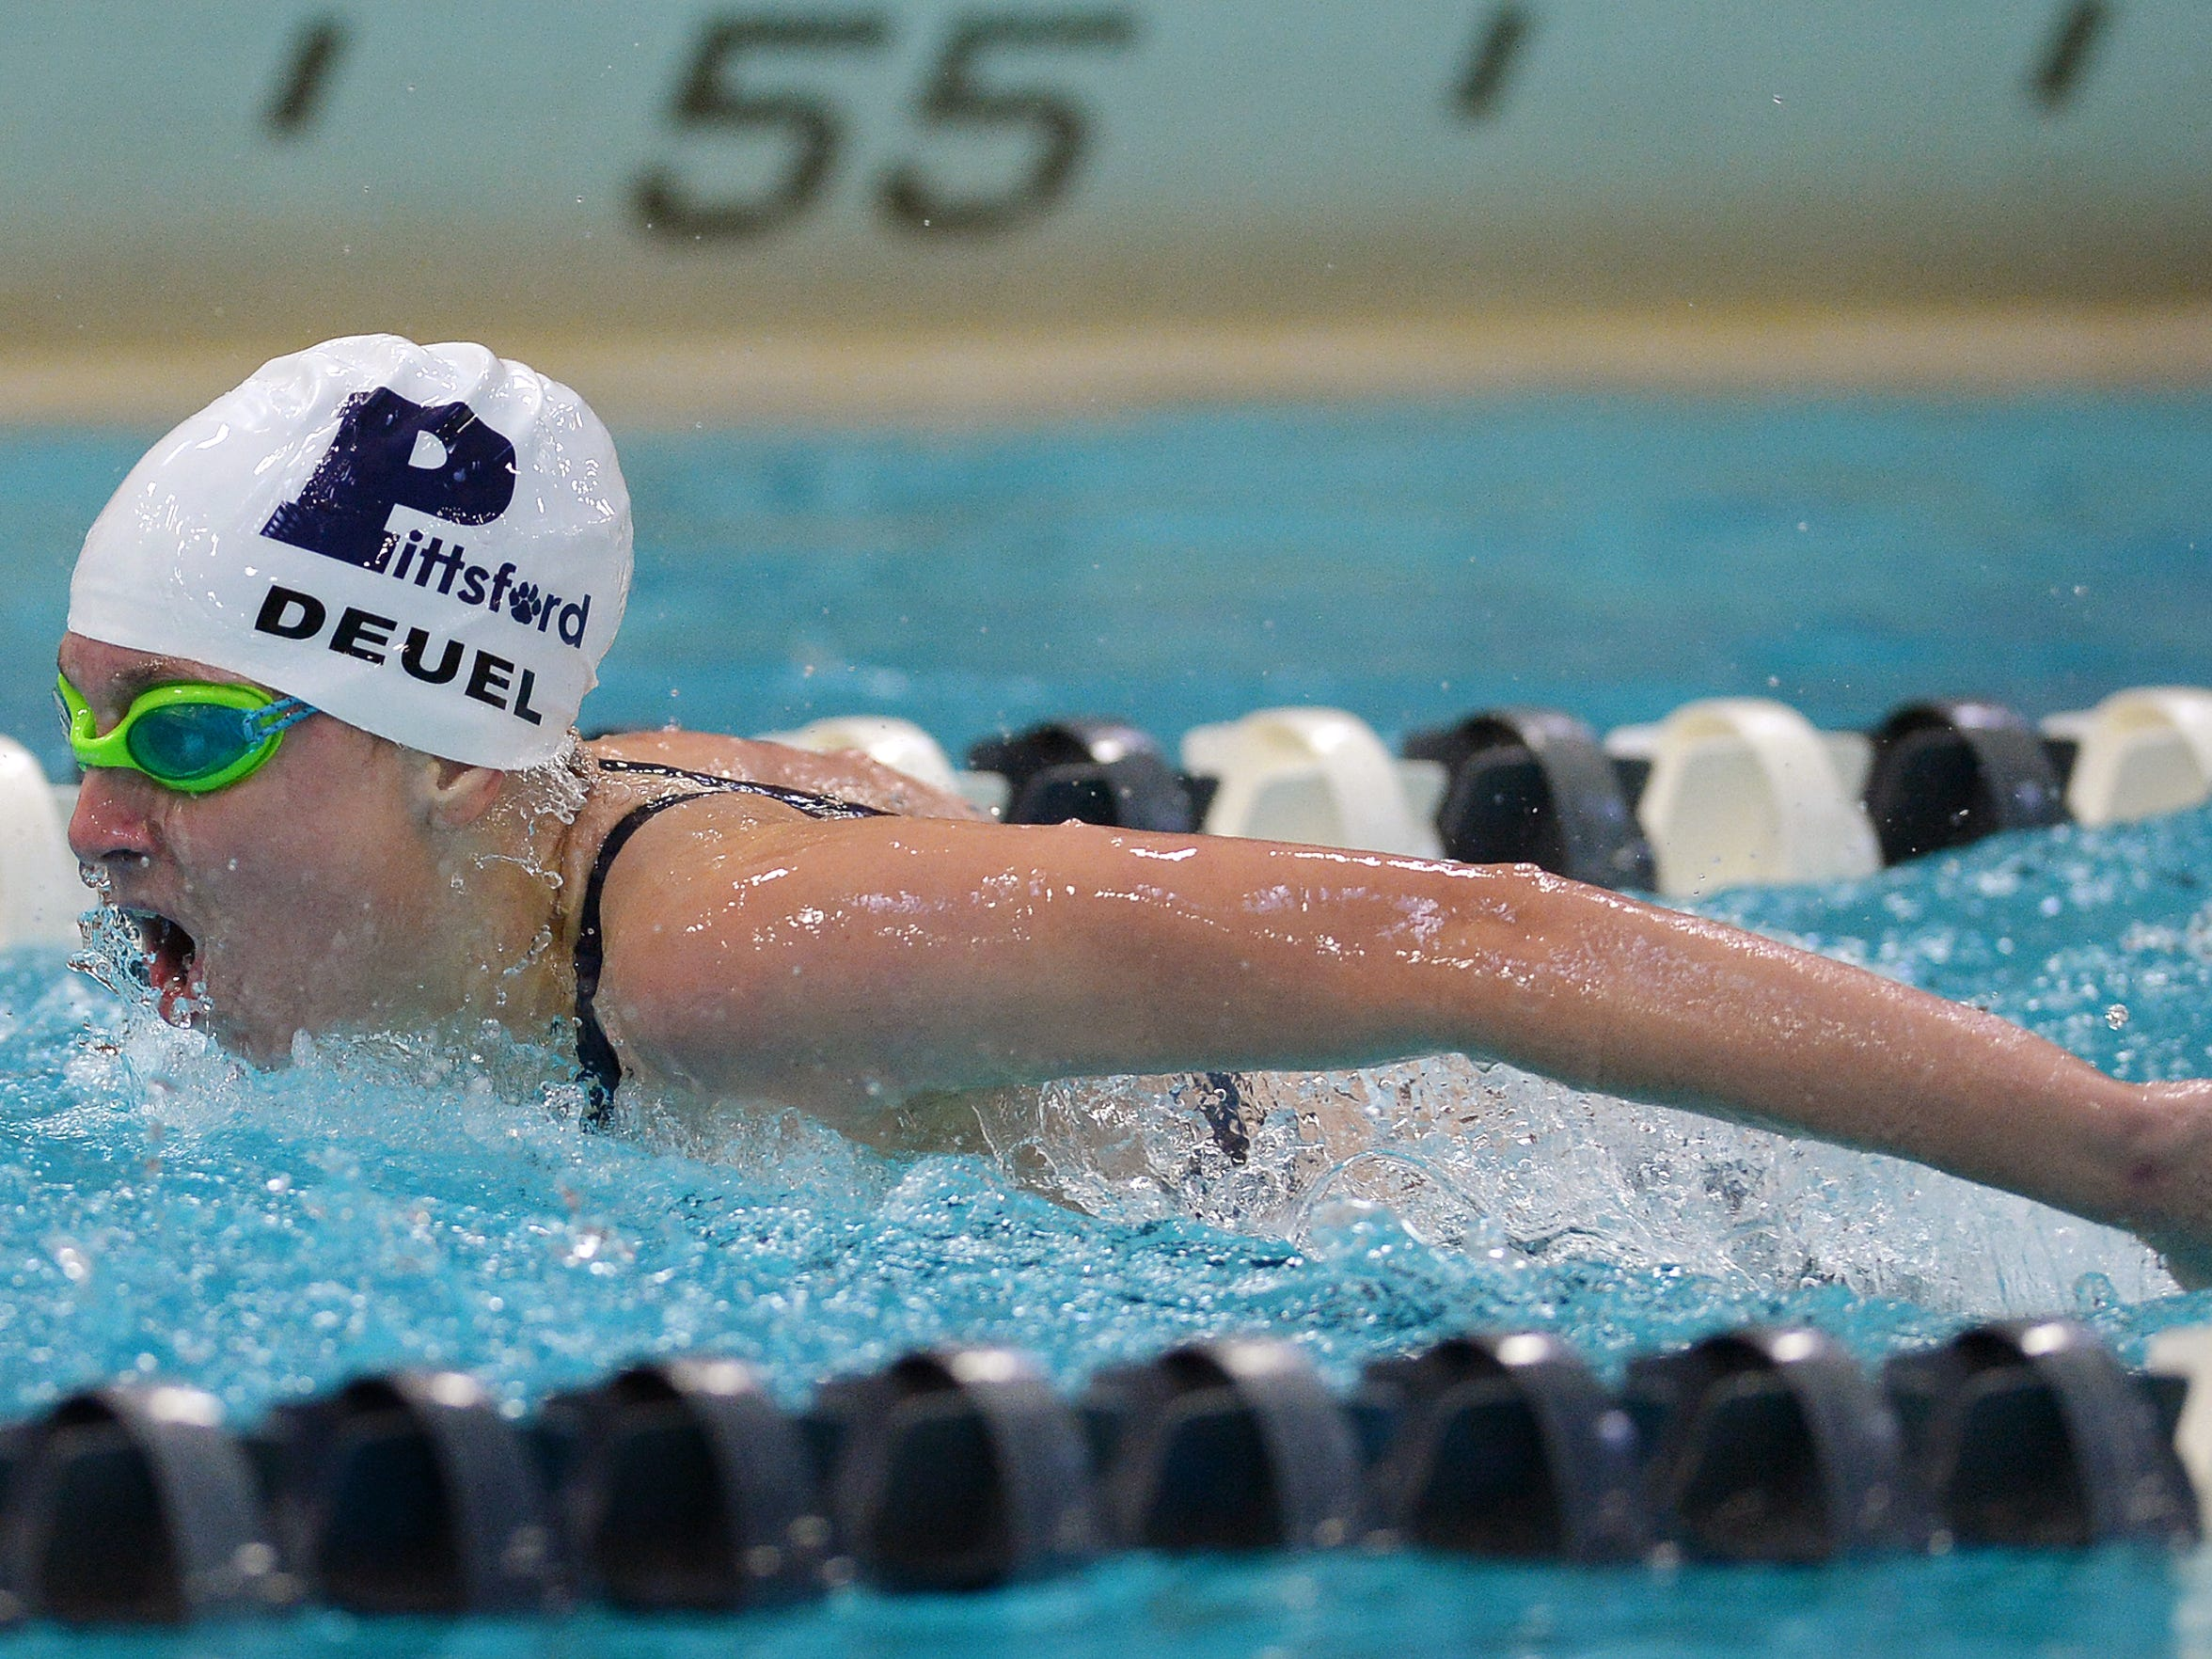 Pittsford's Megan Deuel swims the 100 yard butterfly during regular season meet at Pittsford Mendon High School on Tuesday, Sept. 27, 2016.